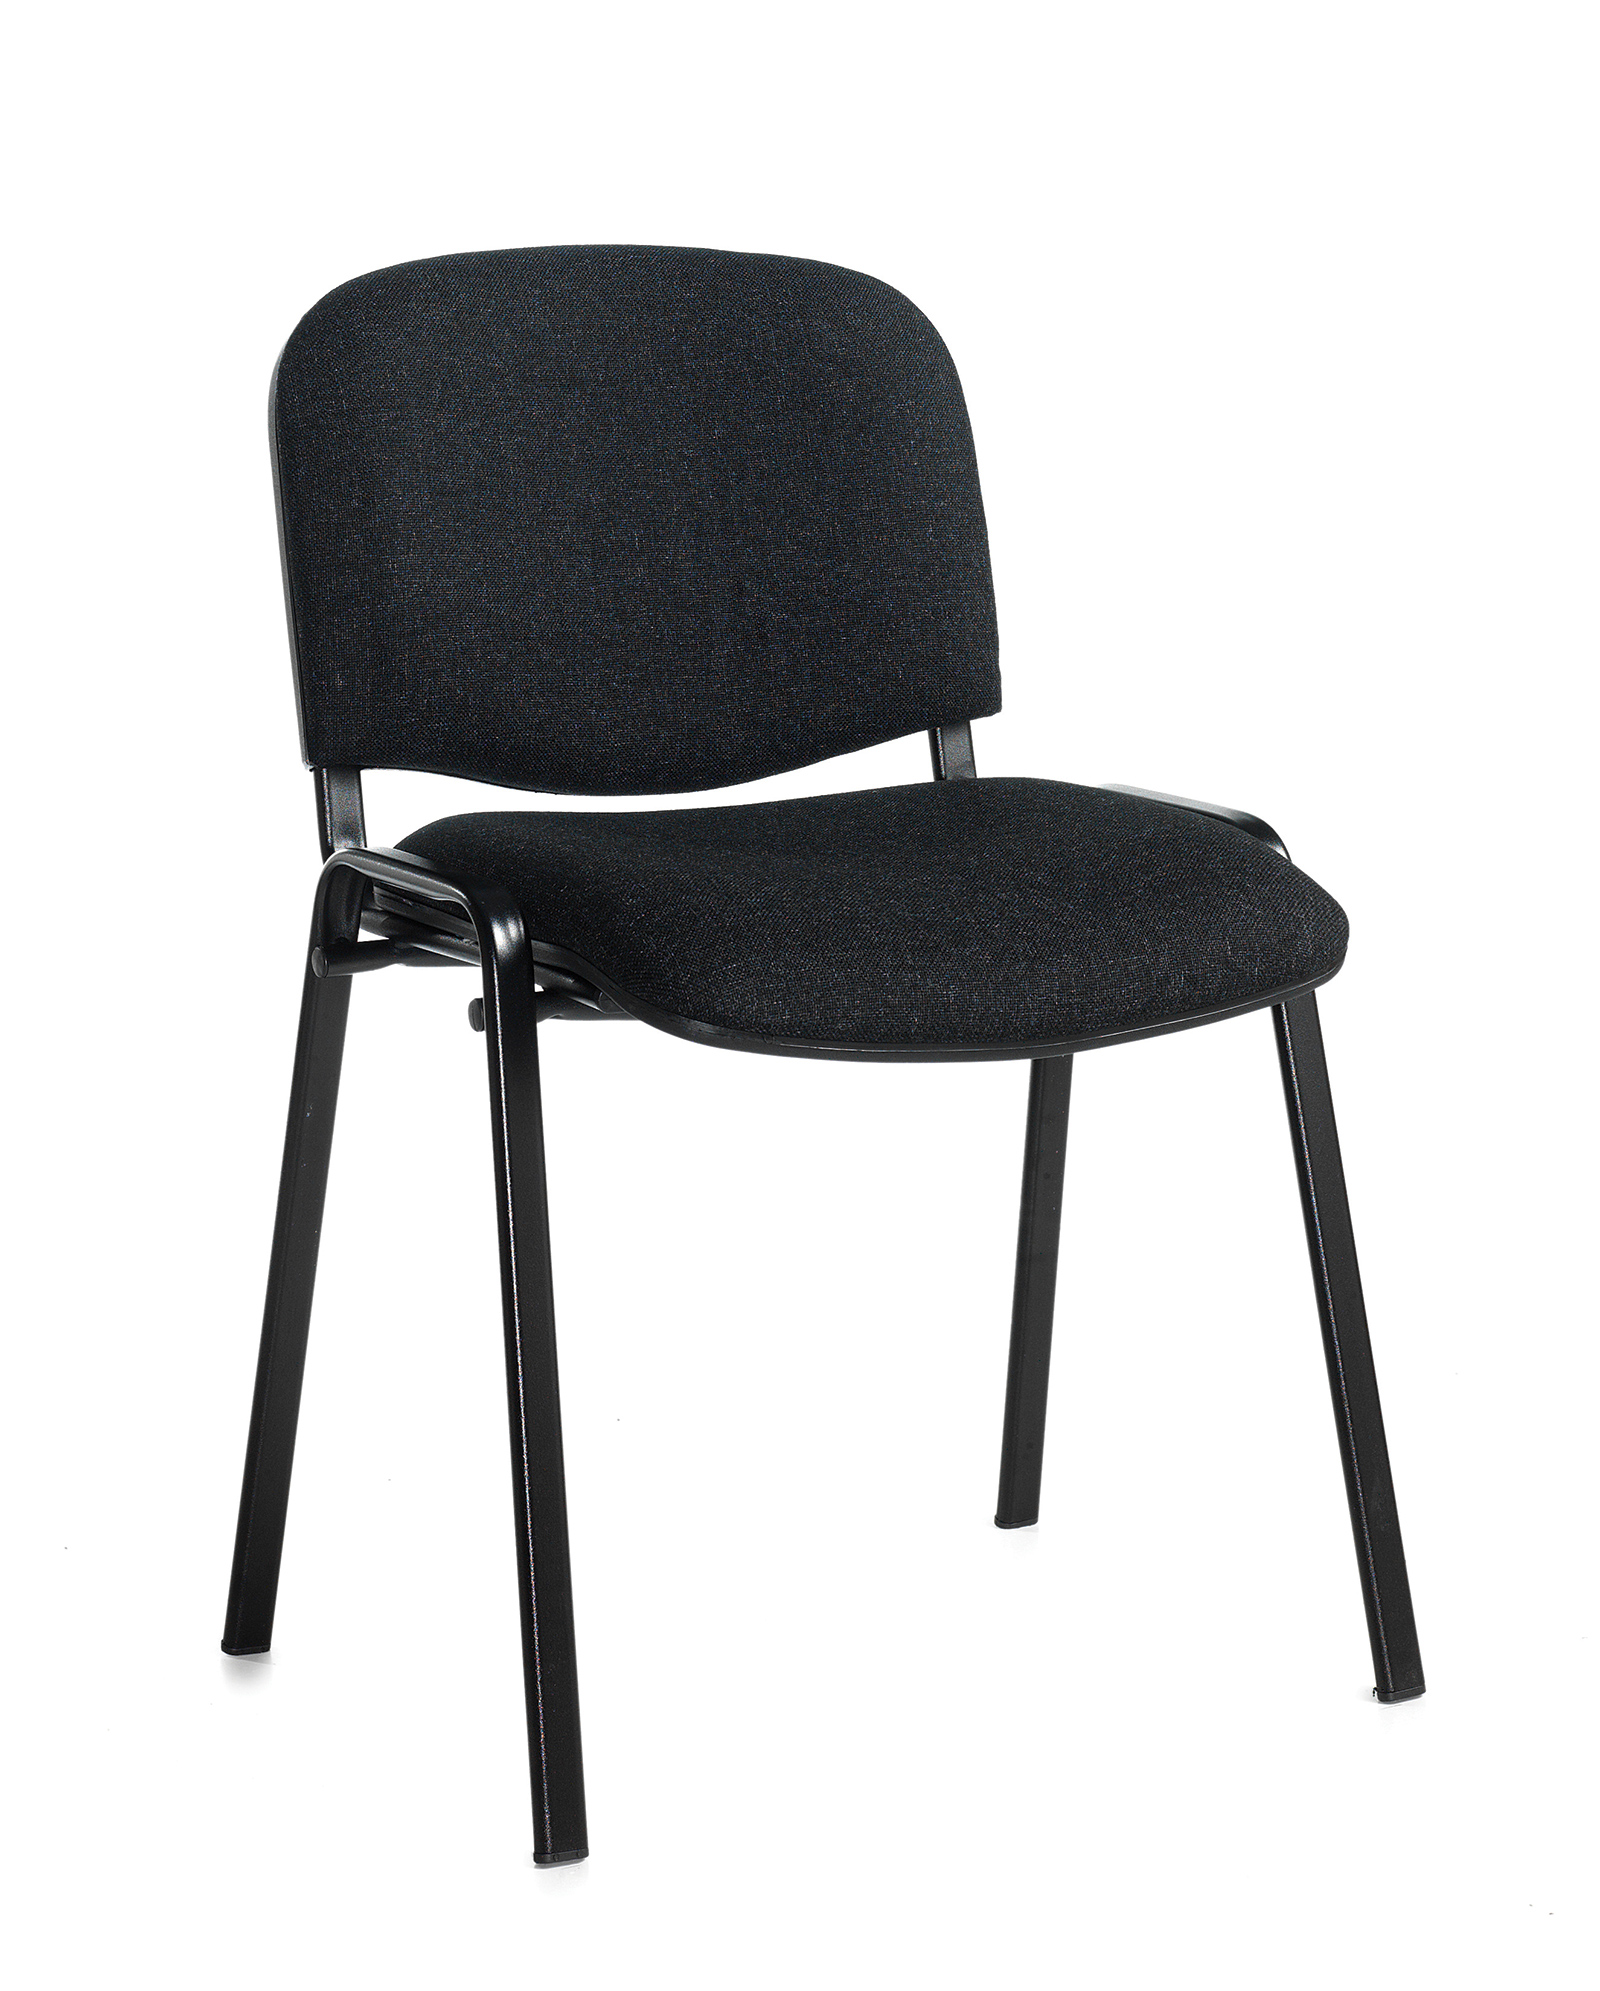 Taurus Meeting Room Stackable Chair With Black Frame And No Arms Charcoal